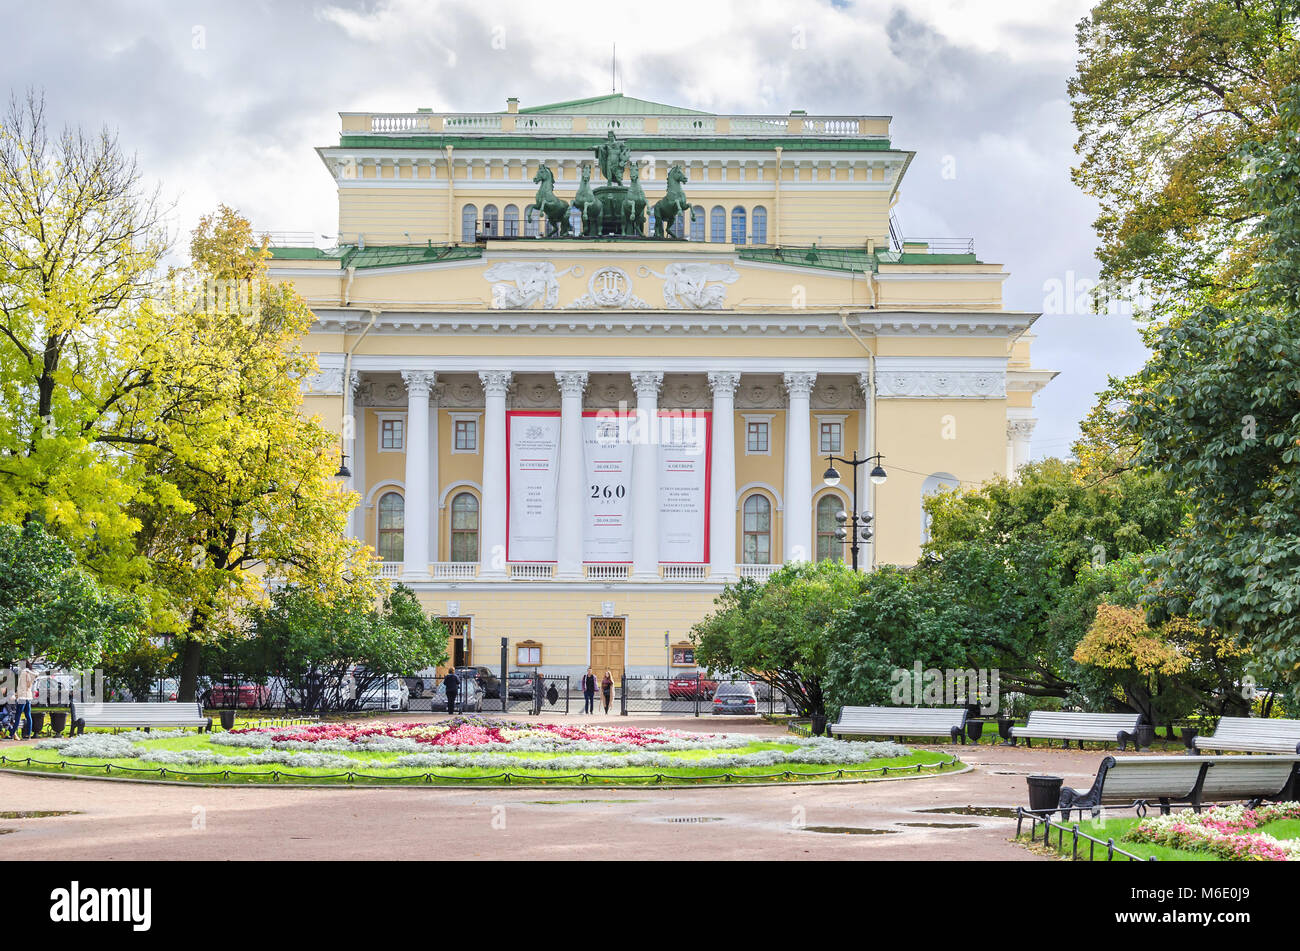 Saint Petersburg, Russia - September 30, 2016: Empire-style building of Alexandrinsky Theatre or Russian State Pushkin - Stock Image